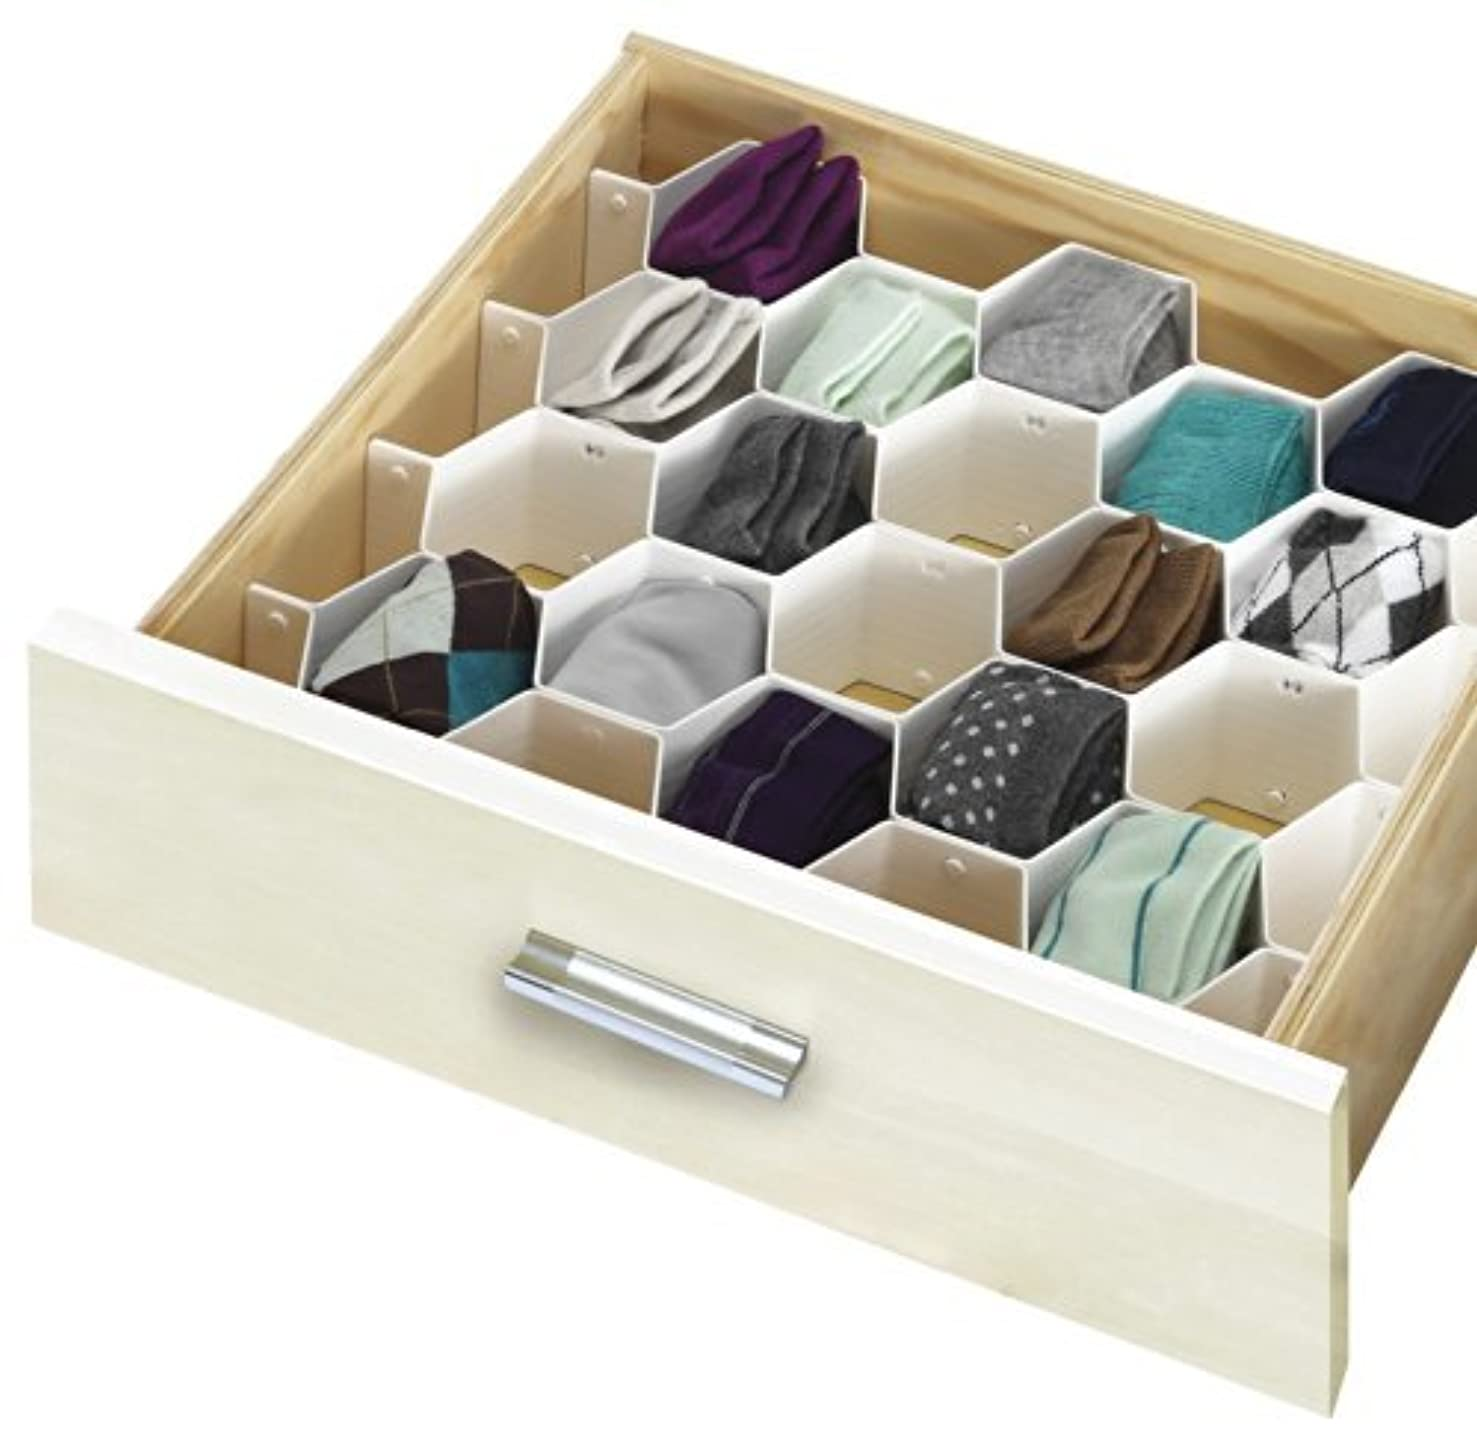 Simplify 34 Compartment Honeycomb Design Drawer Organizer, White